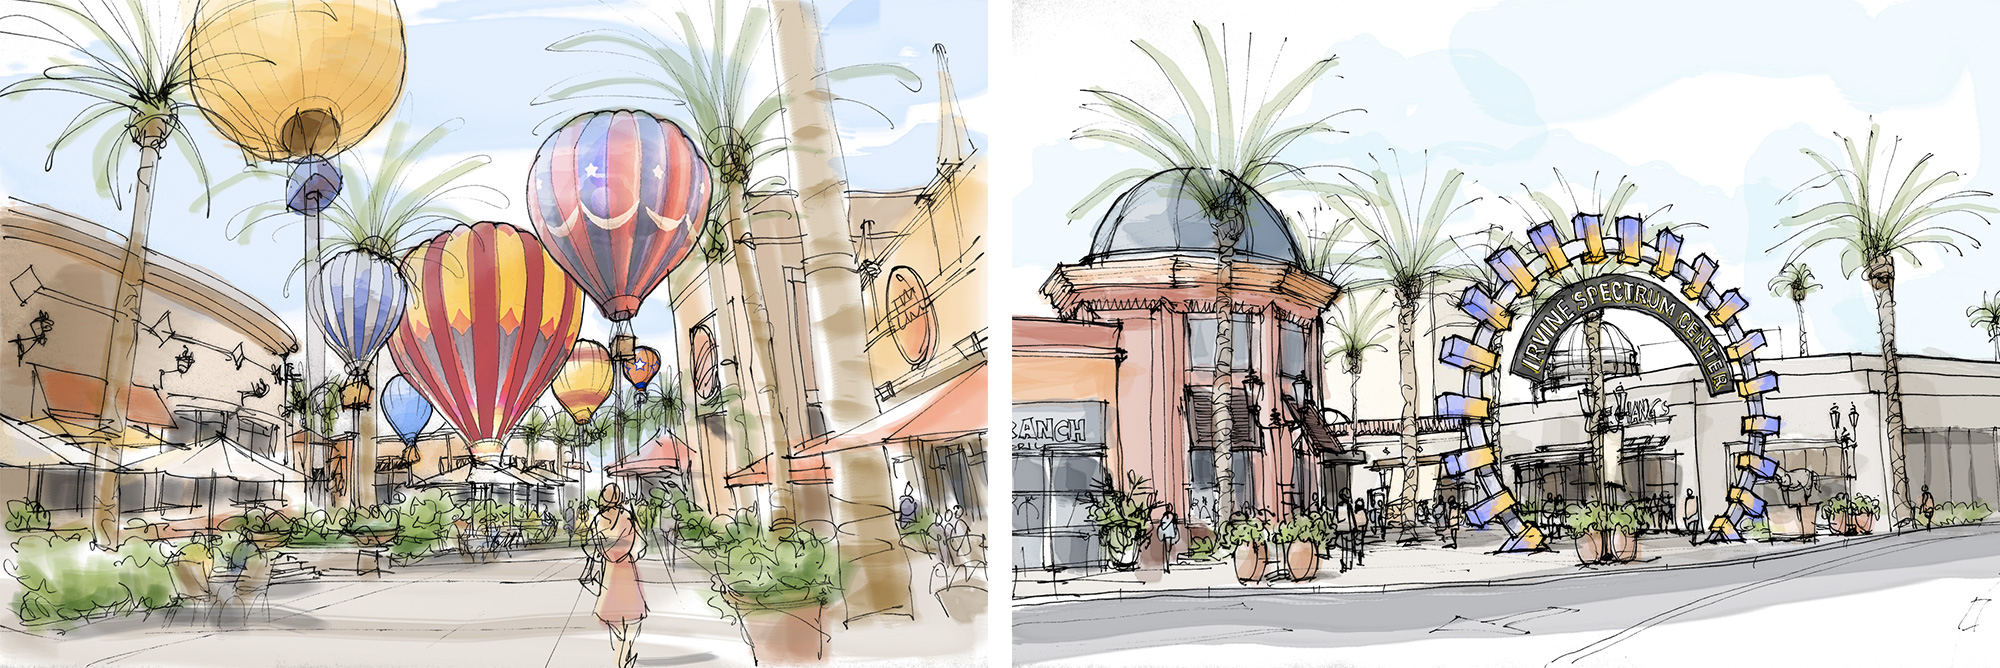 Irvine Spectrum Center Concept Sketches